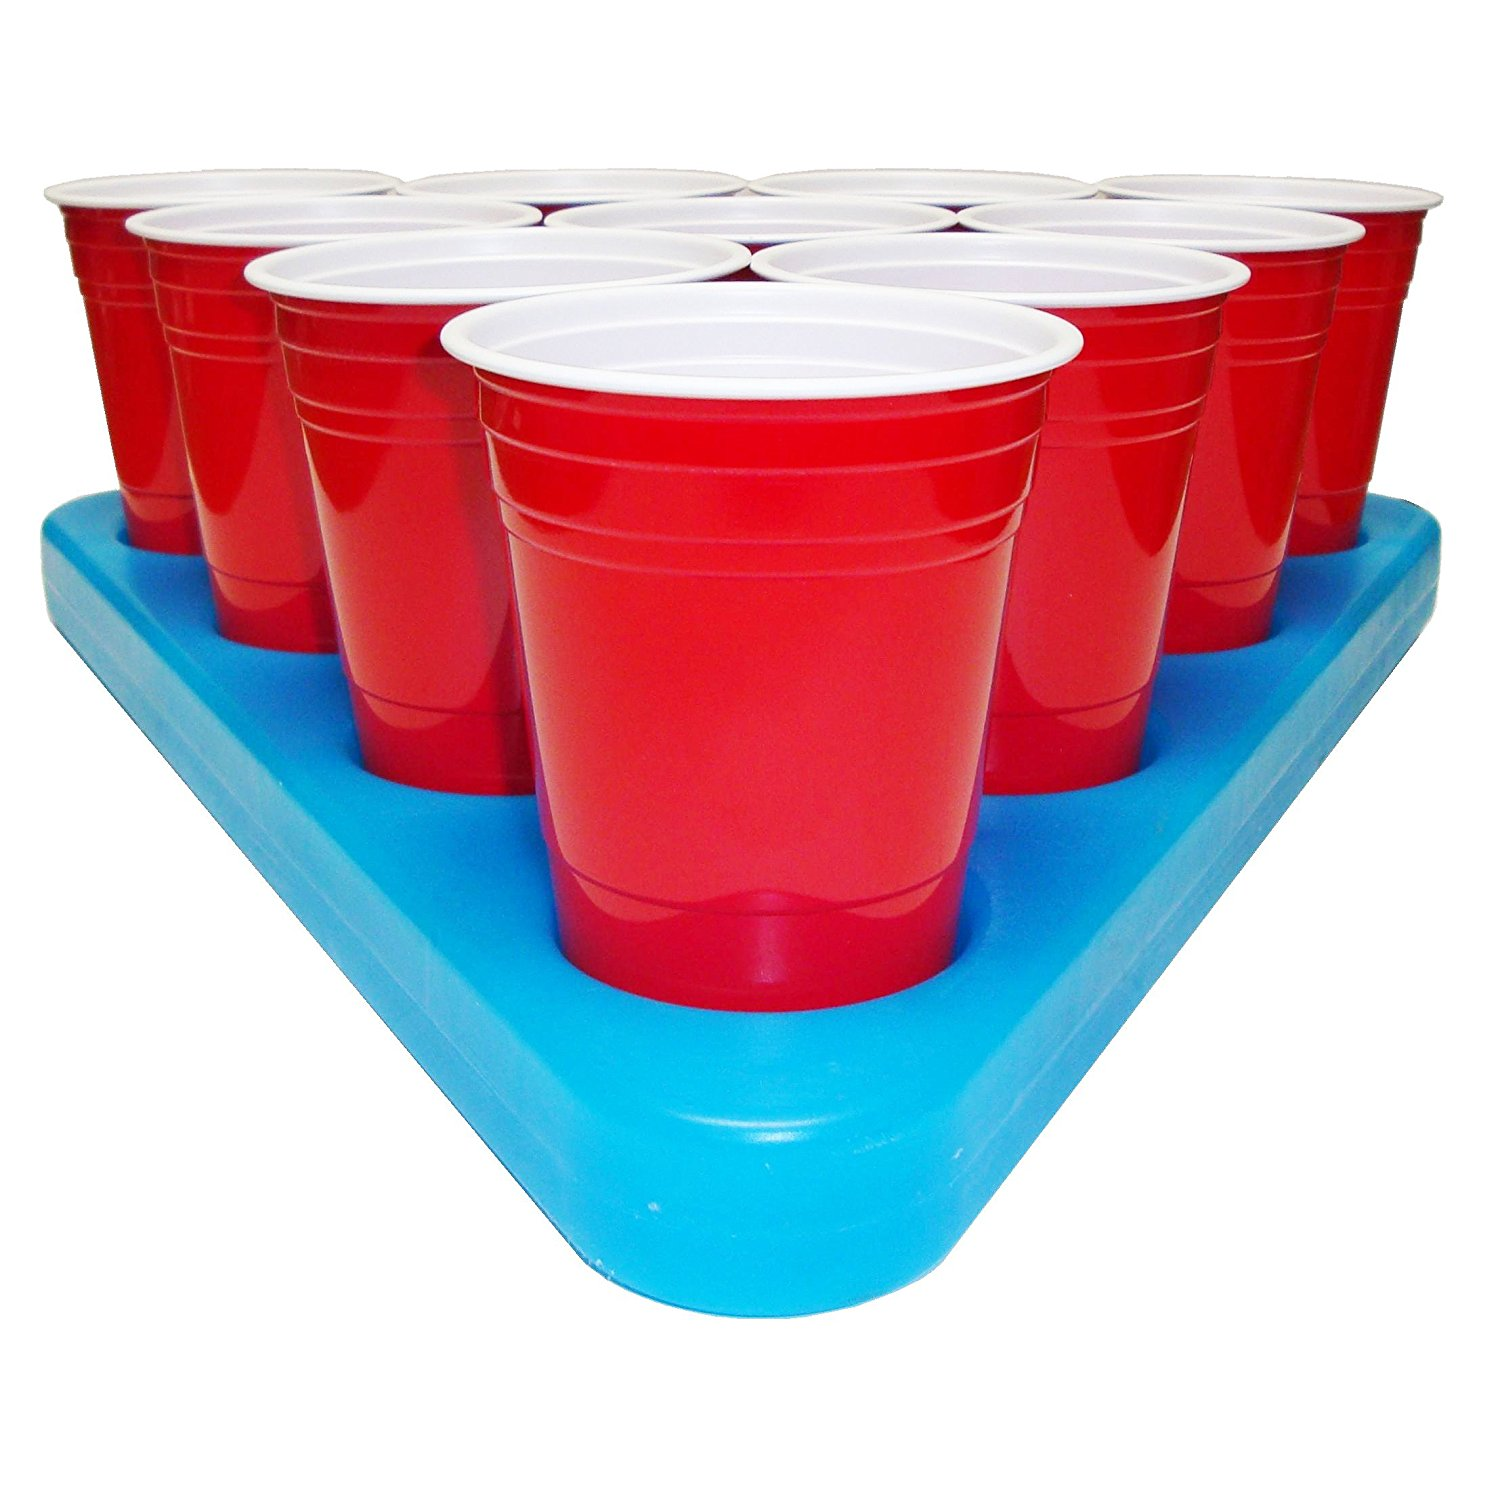 Beer Pong Fixing Cup Formation Rule, Beer Pong Rules, Cup Formation Rule